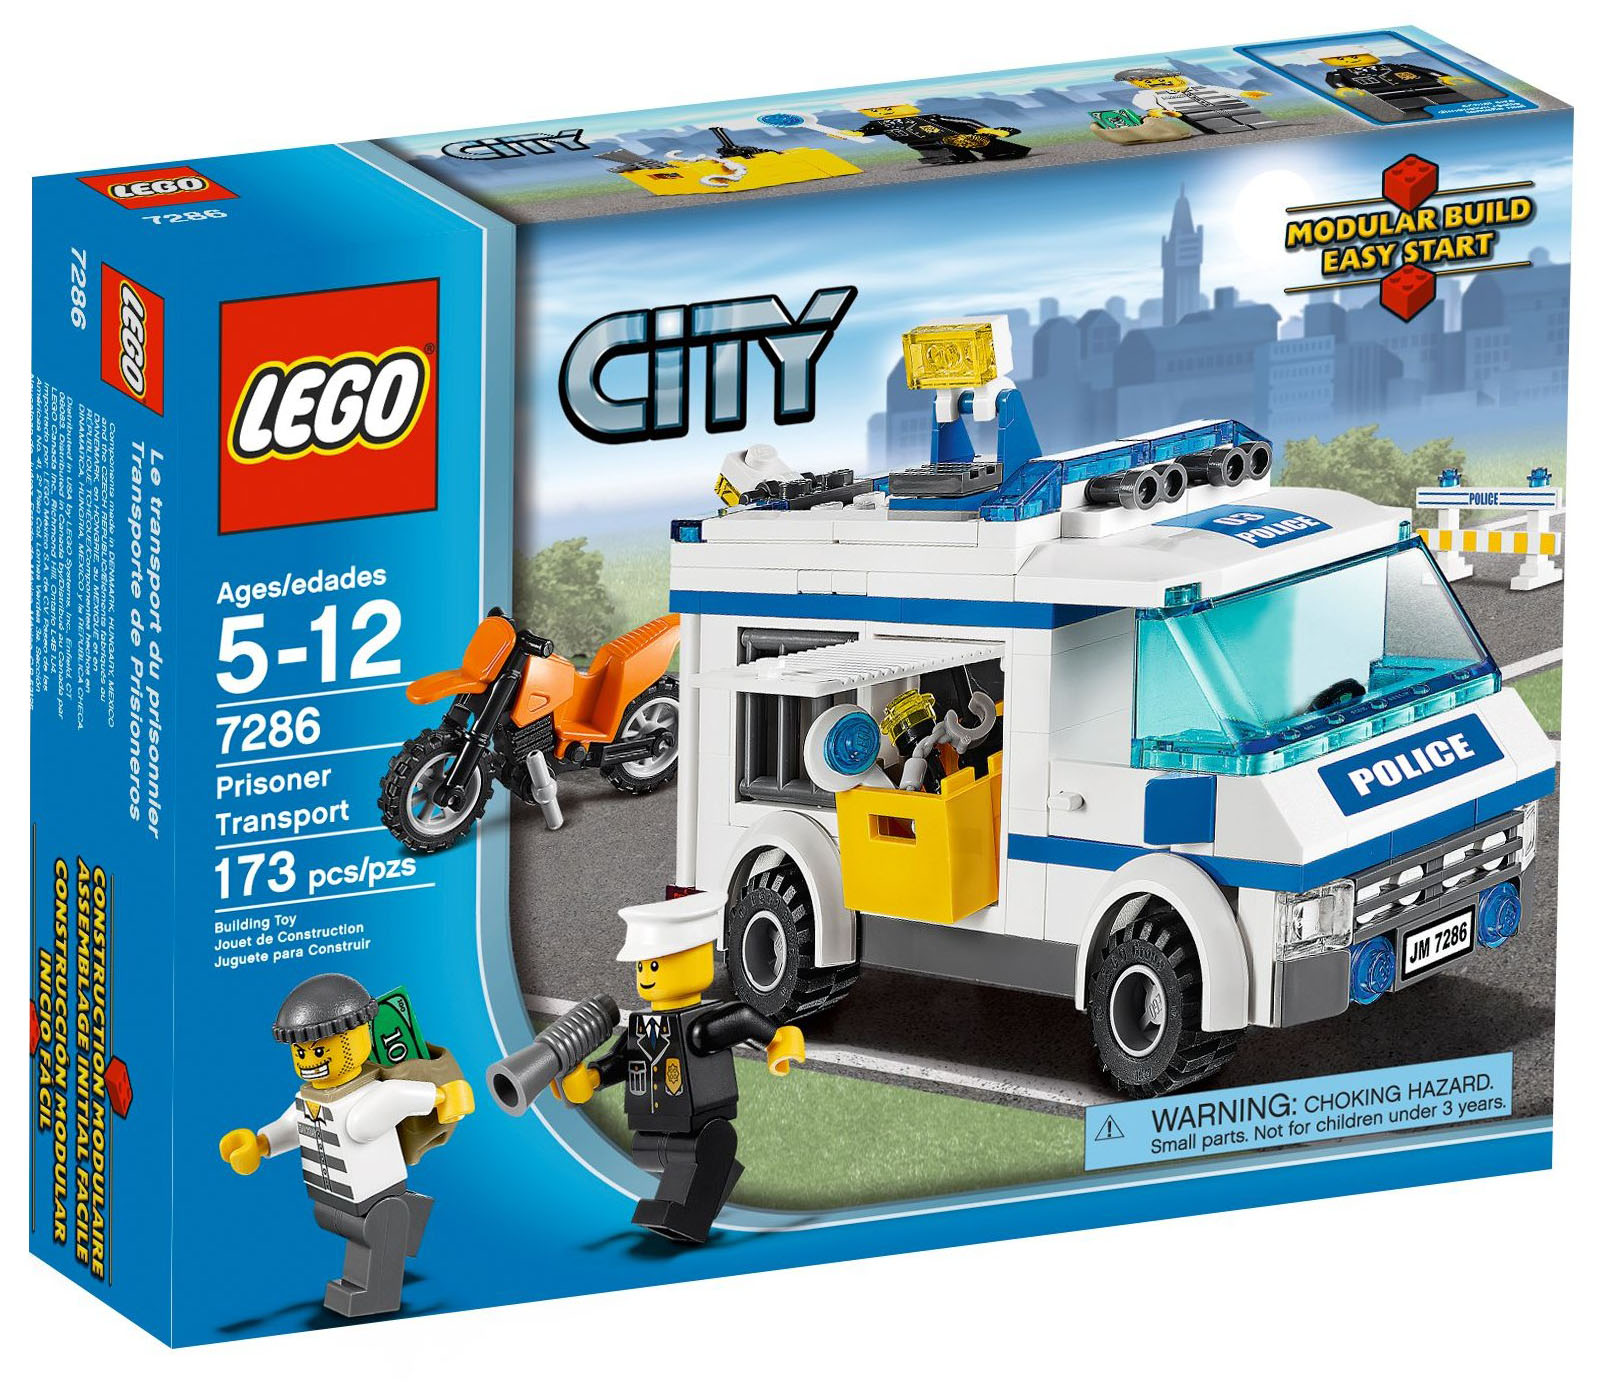 lego city 7286 pas cher le transport du prisonnier. Black Bedroom Furniture Sets. Home Design Ideas